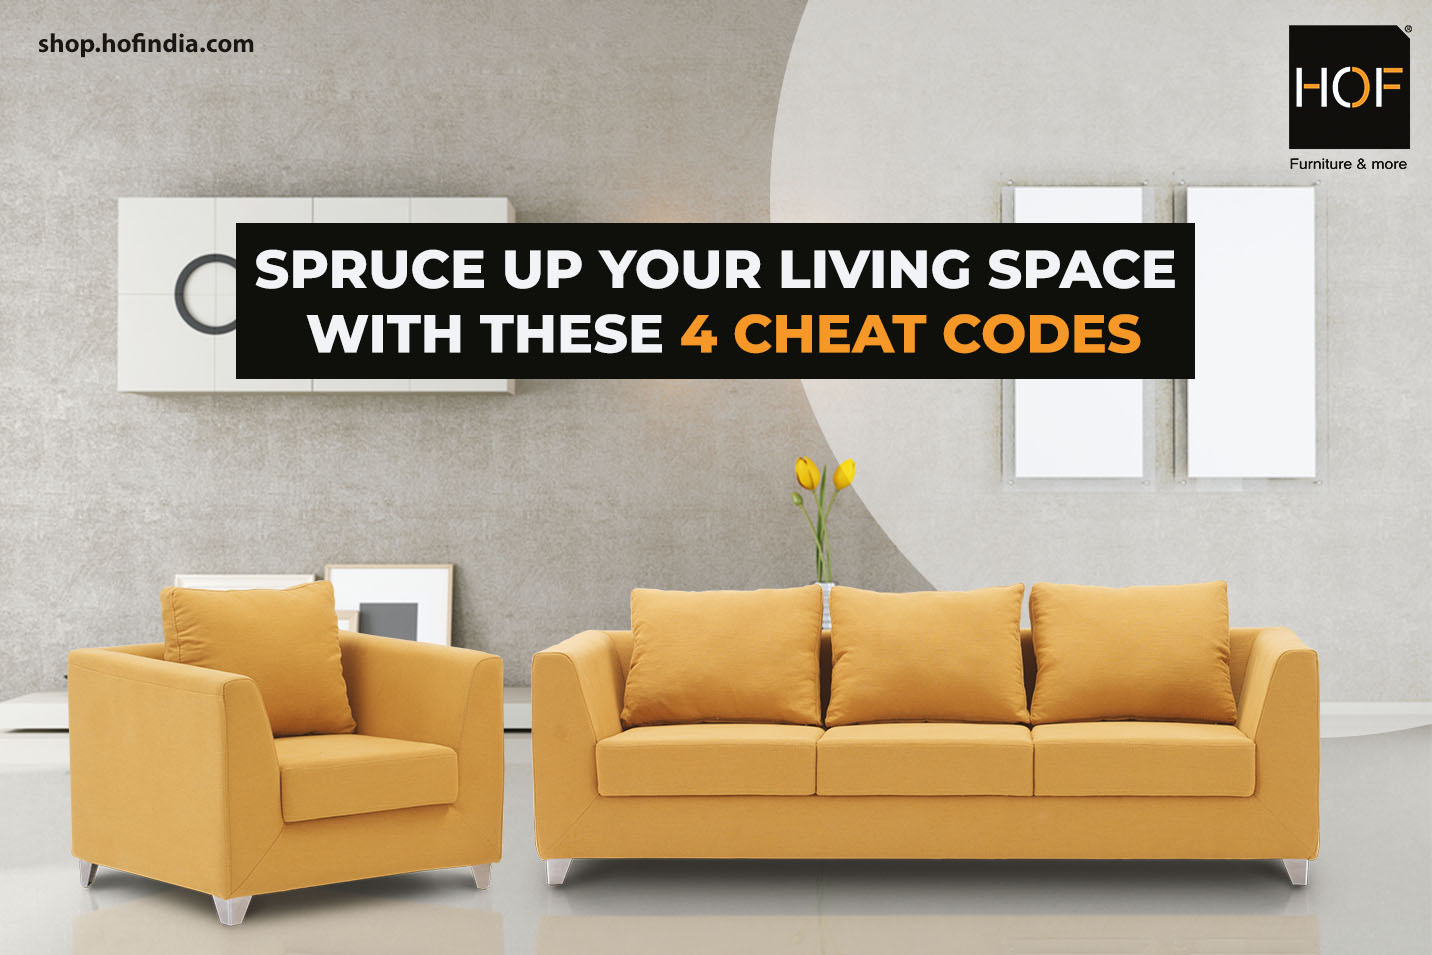 Spruce up your living space with these 4 cheat codes